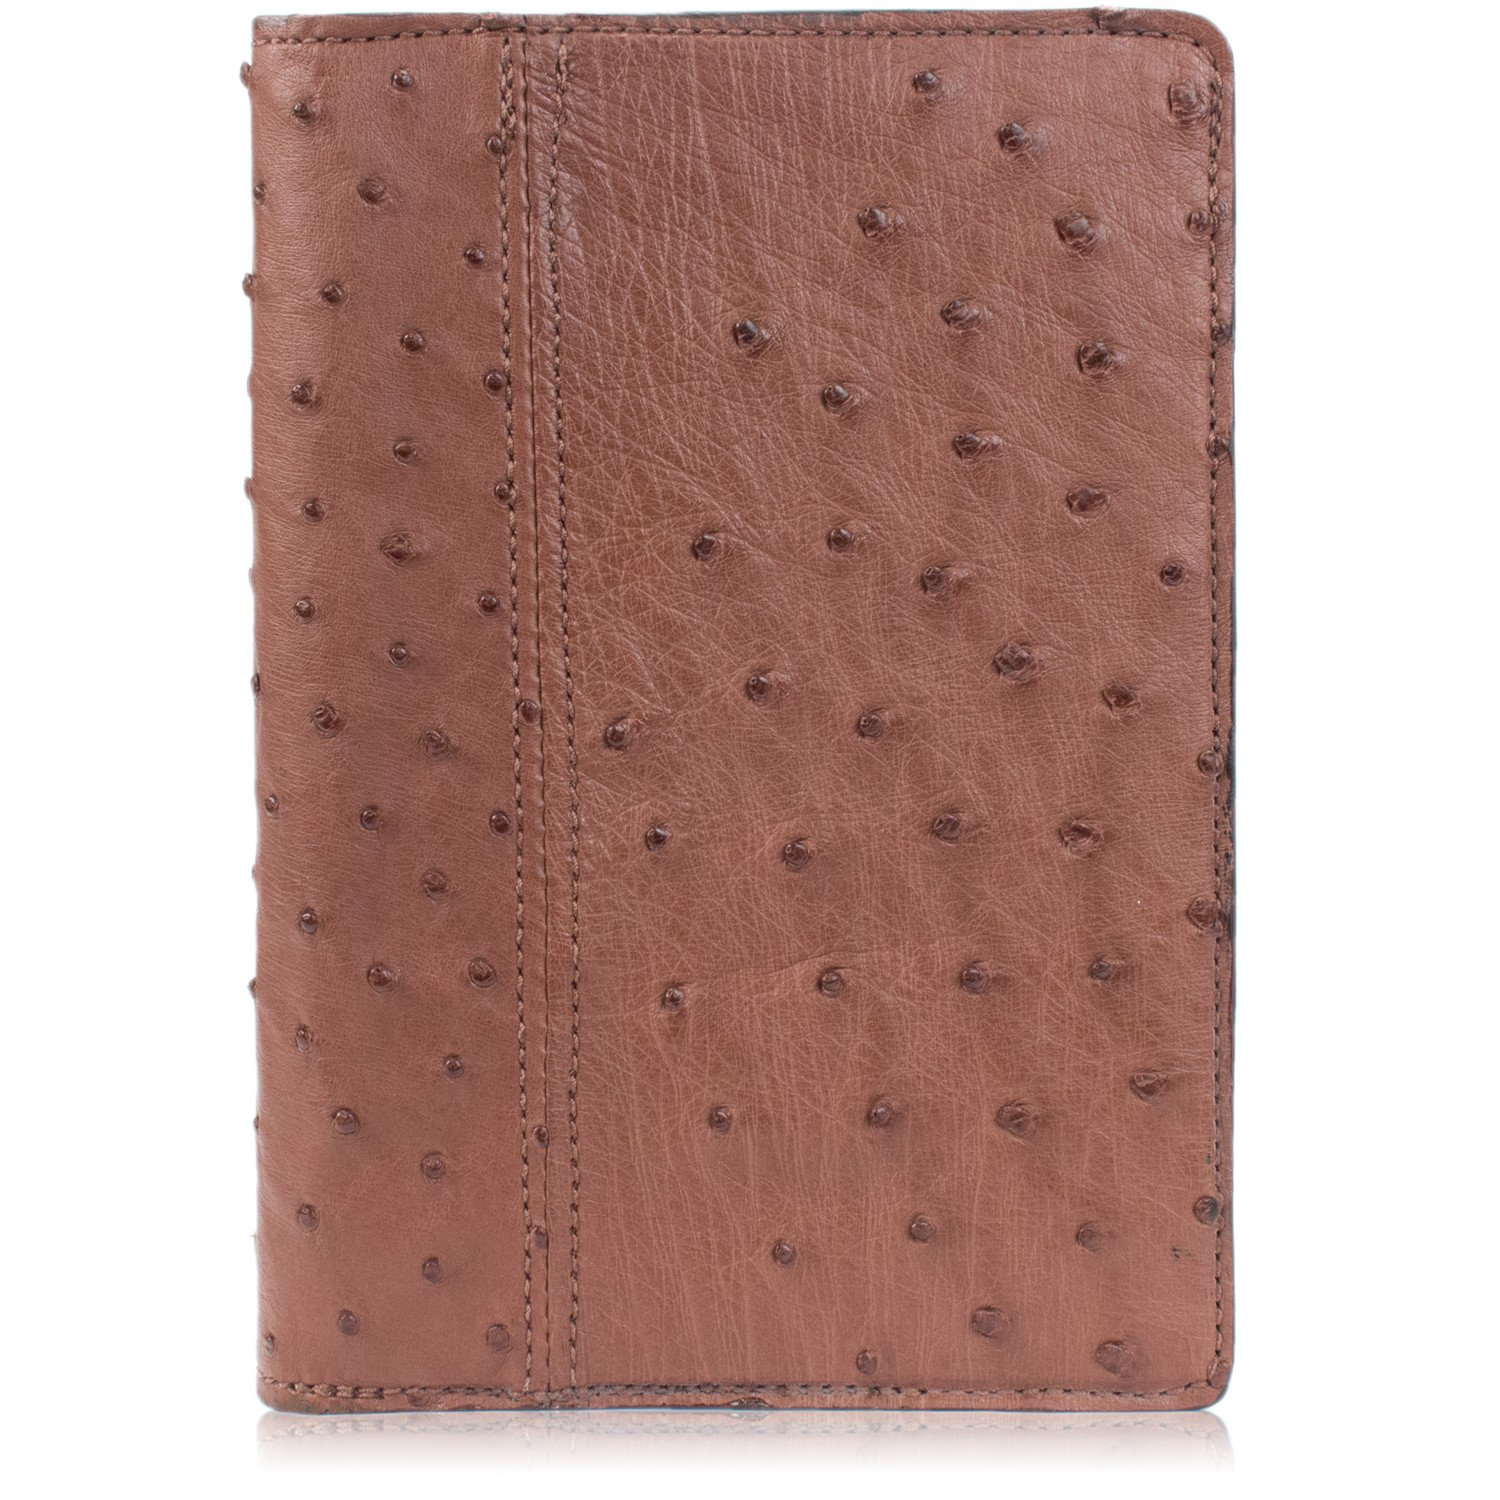 Genuine Ostrich Skin Leather Notebook Padfolio (Small, Brown)